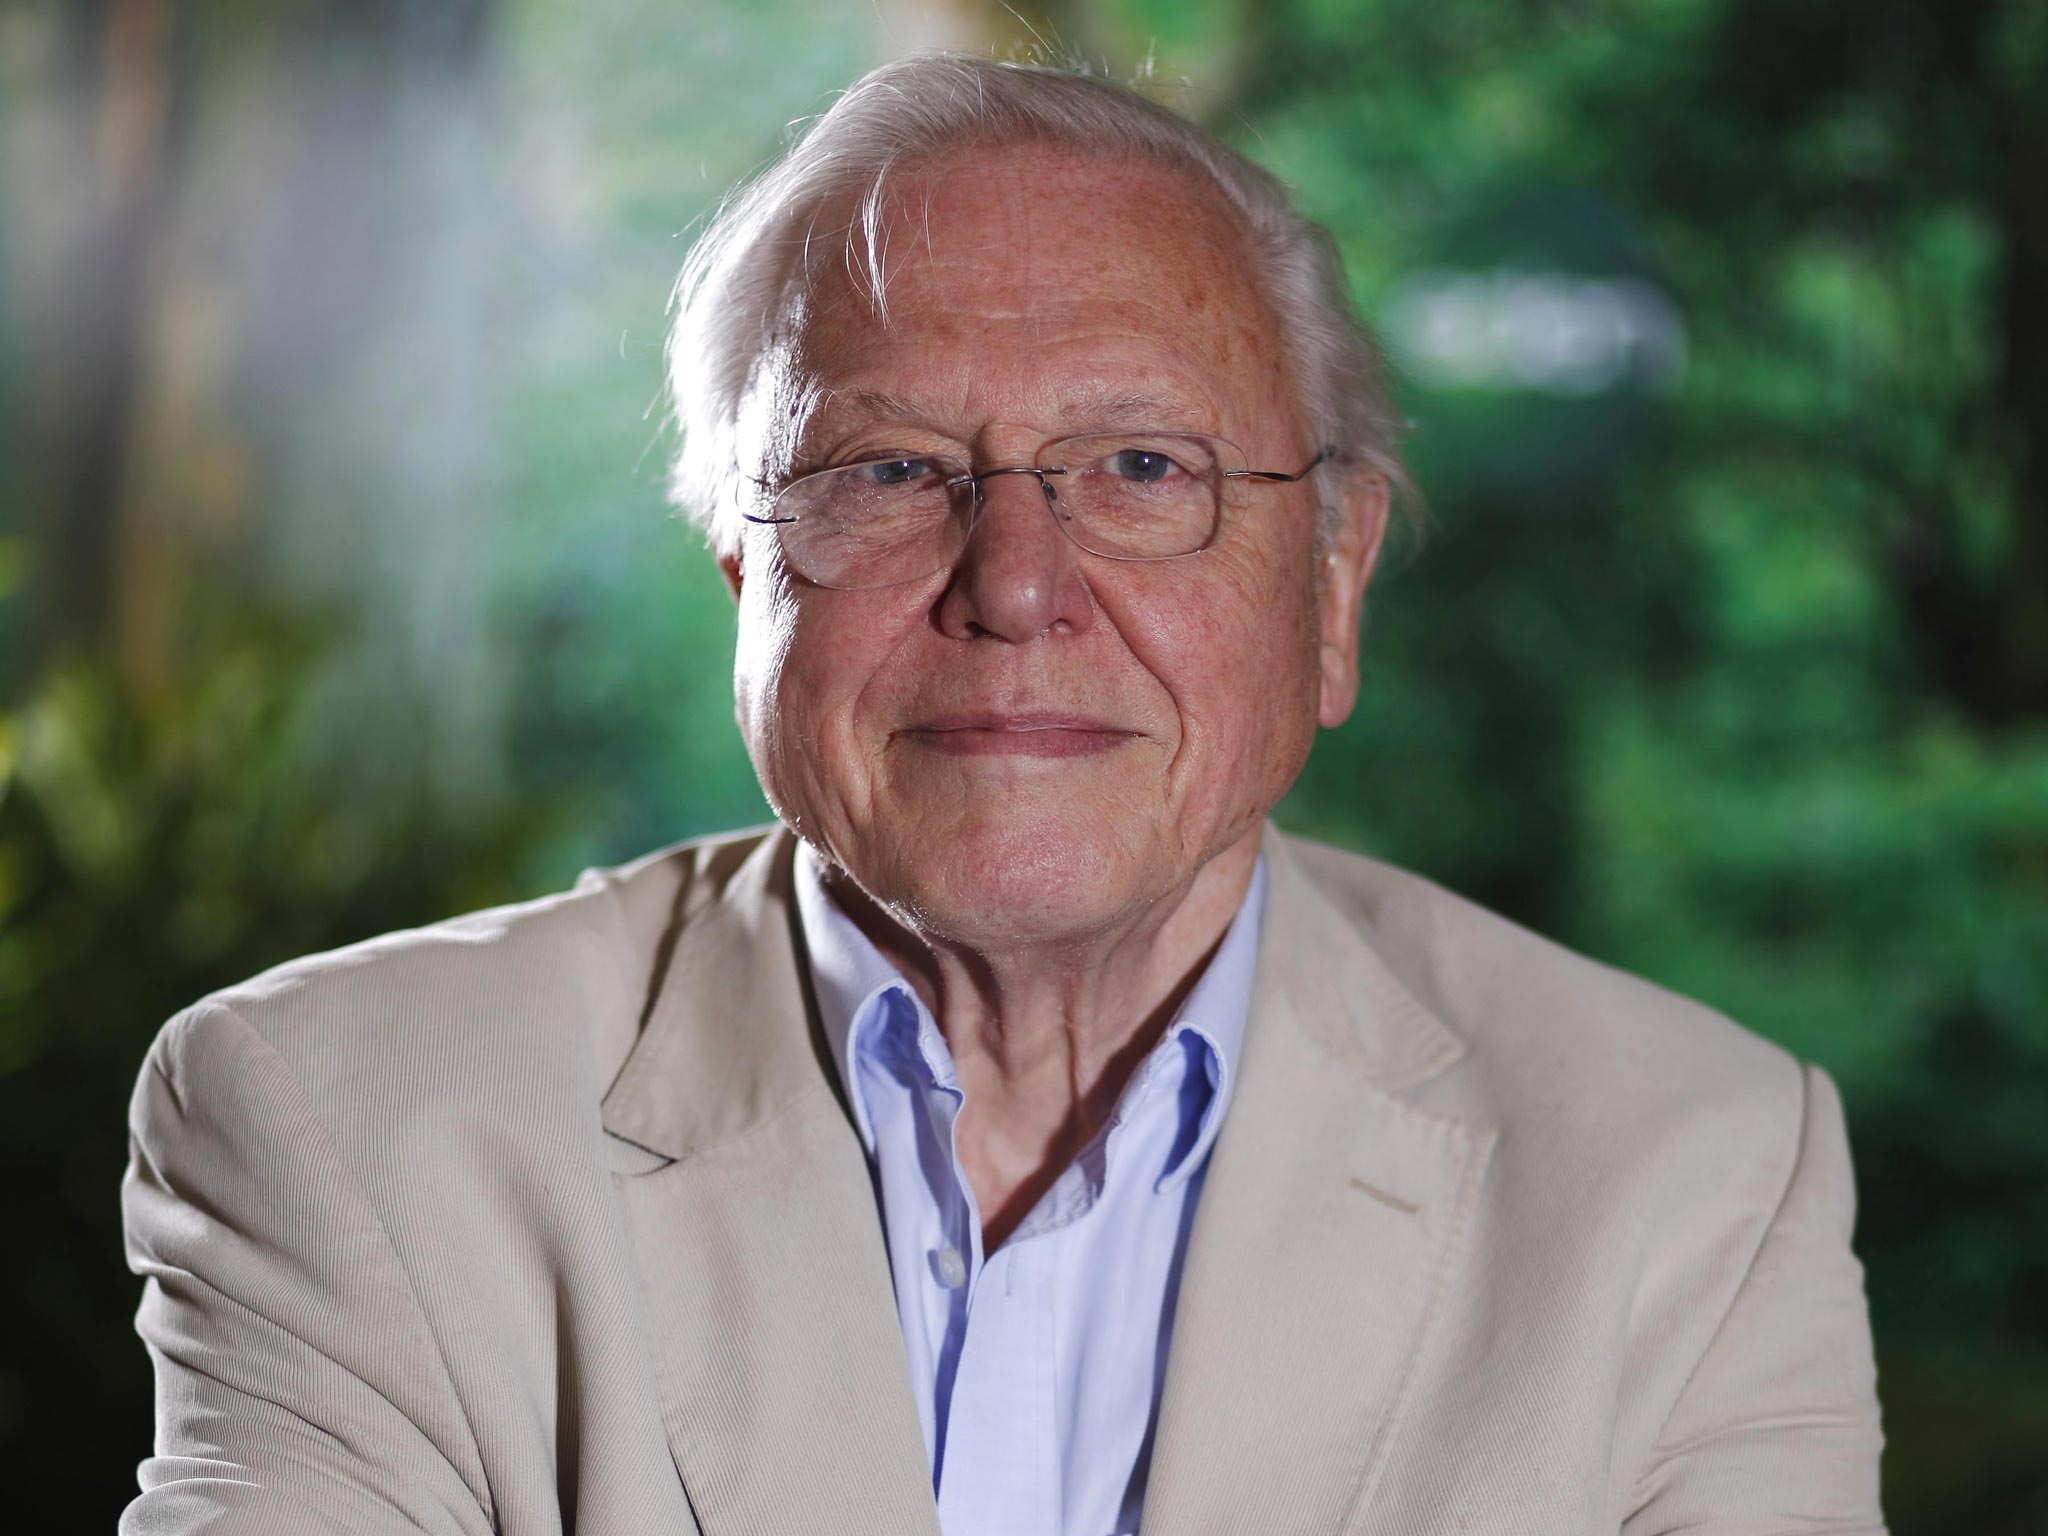 Sir David Attenborough 86 Still His 39 Lively Self